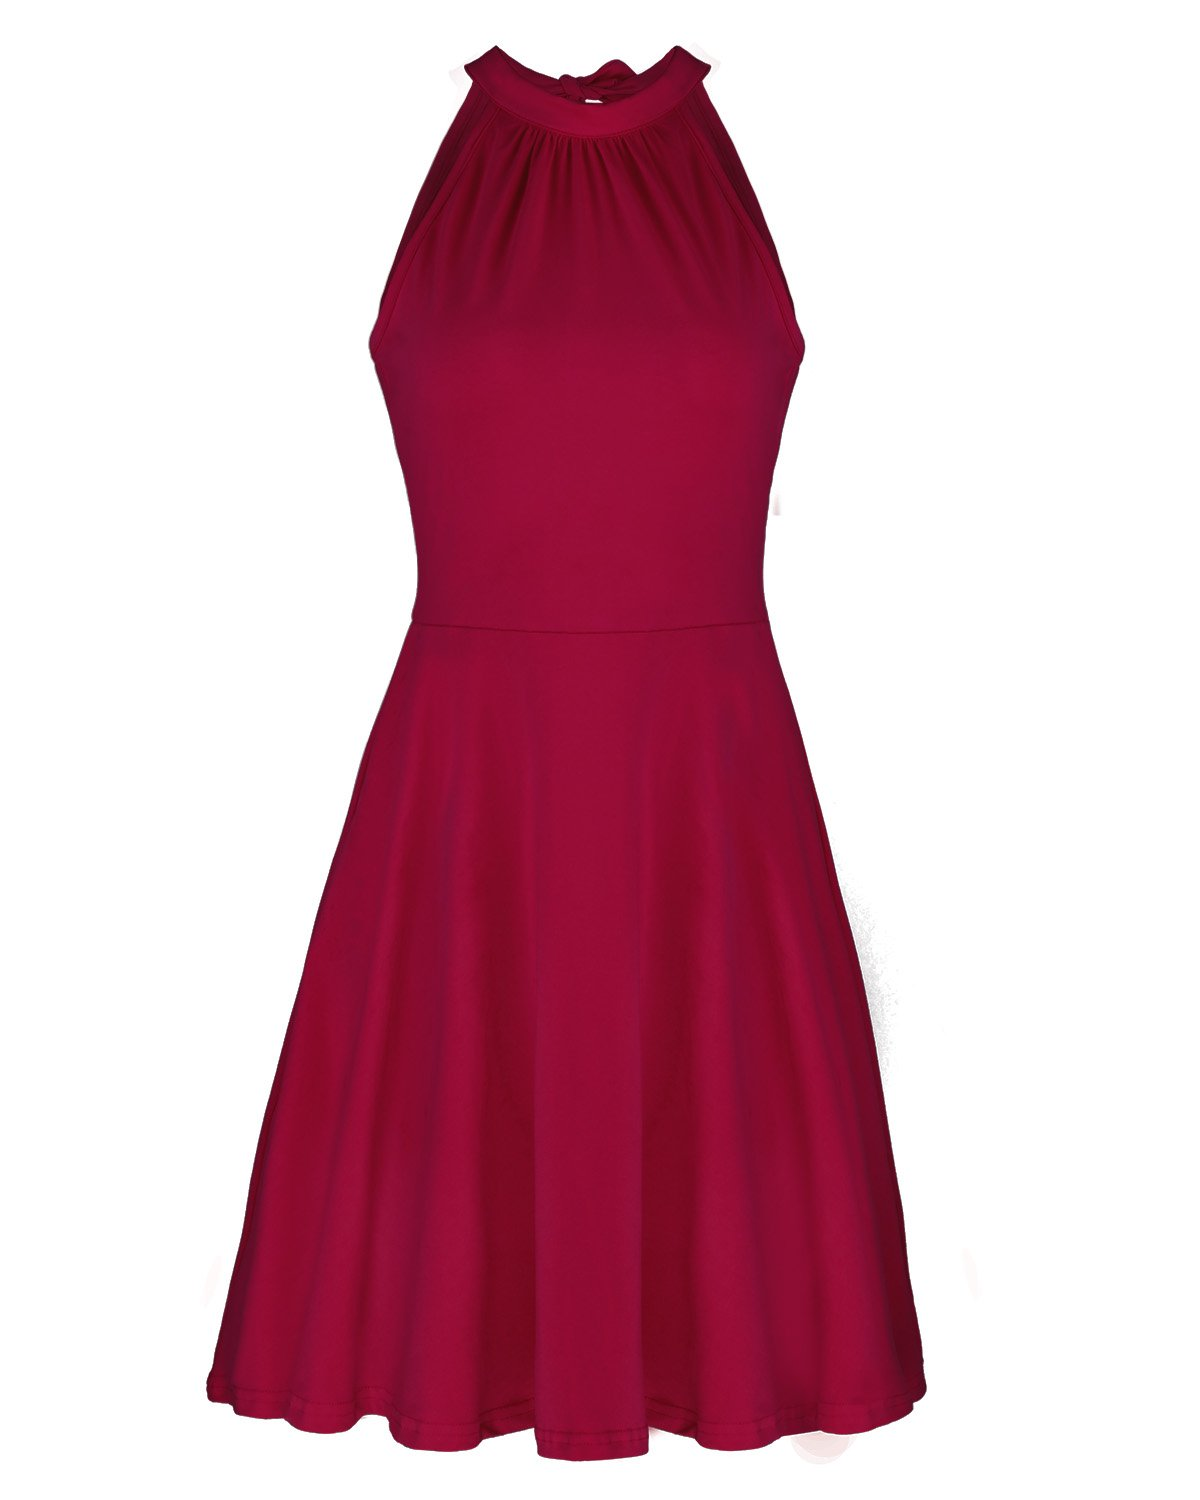 OUGES Women's Stand Collar Off Shoulder Sleeveless Cotton Casual Dress(Wine,L)